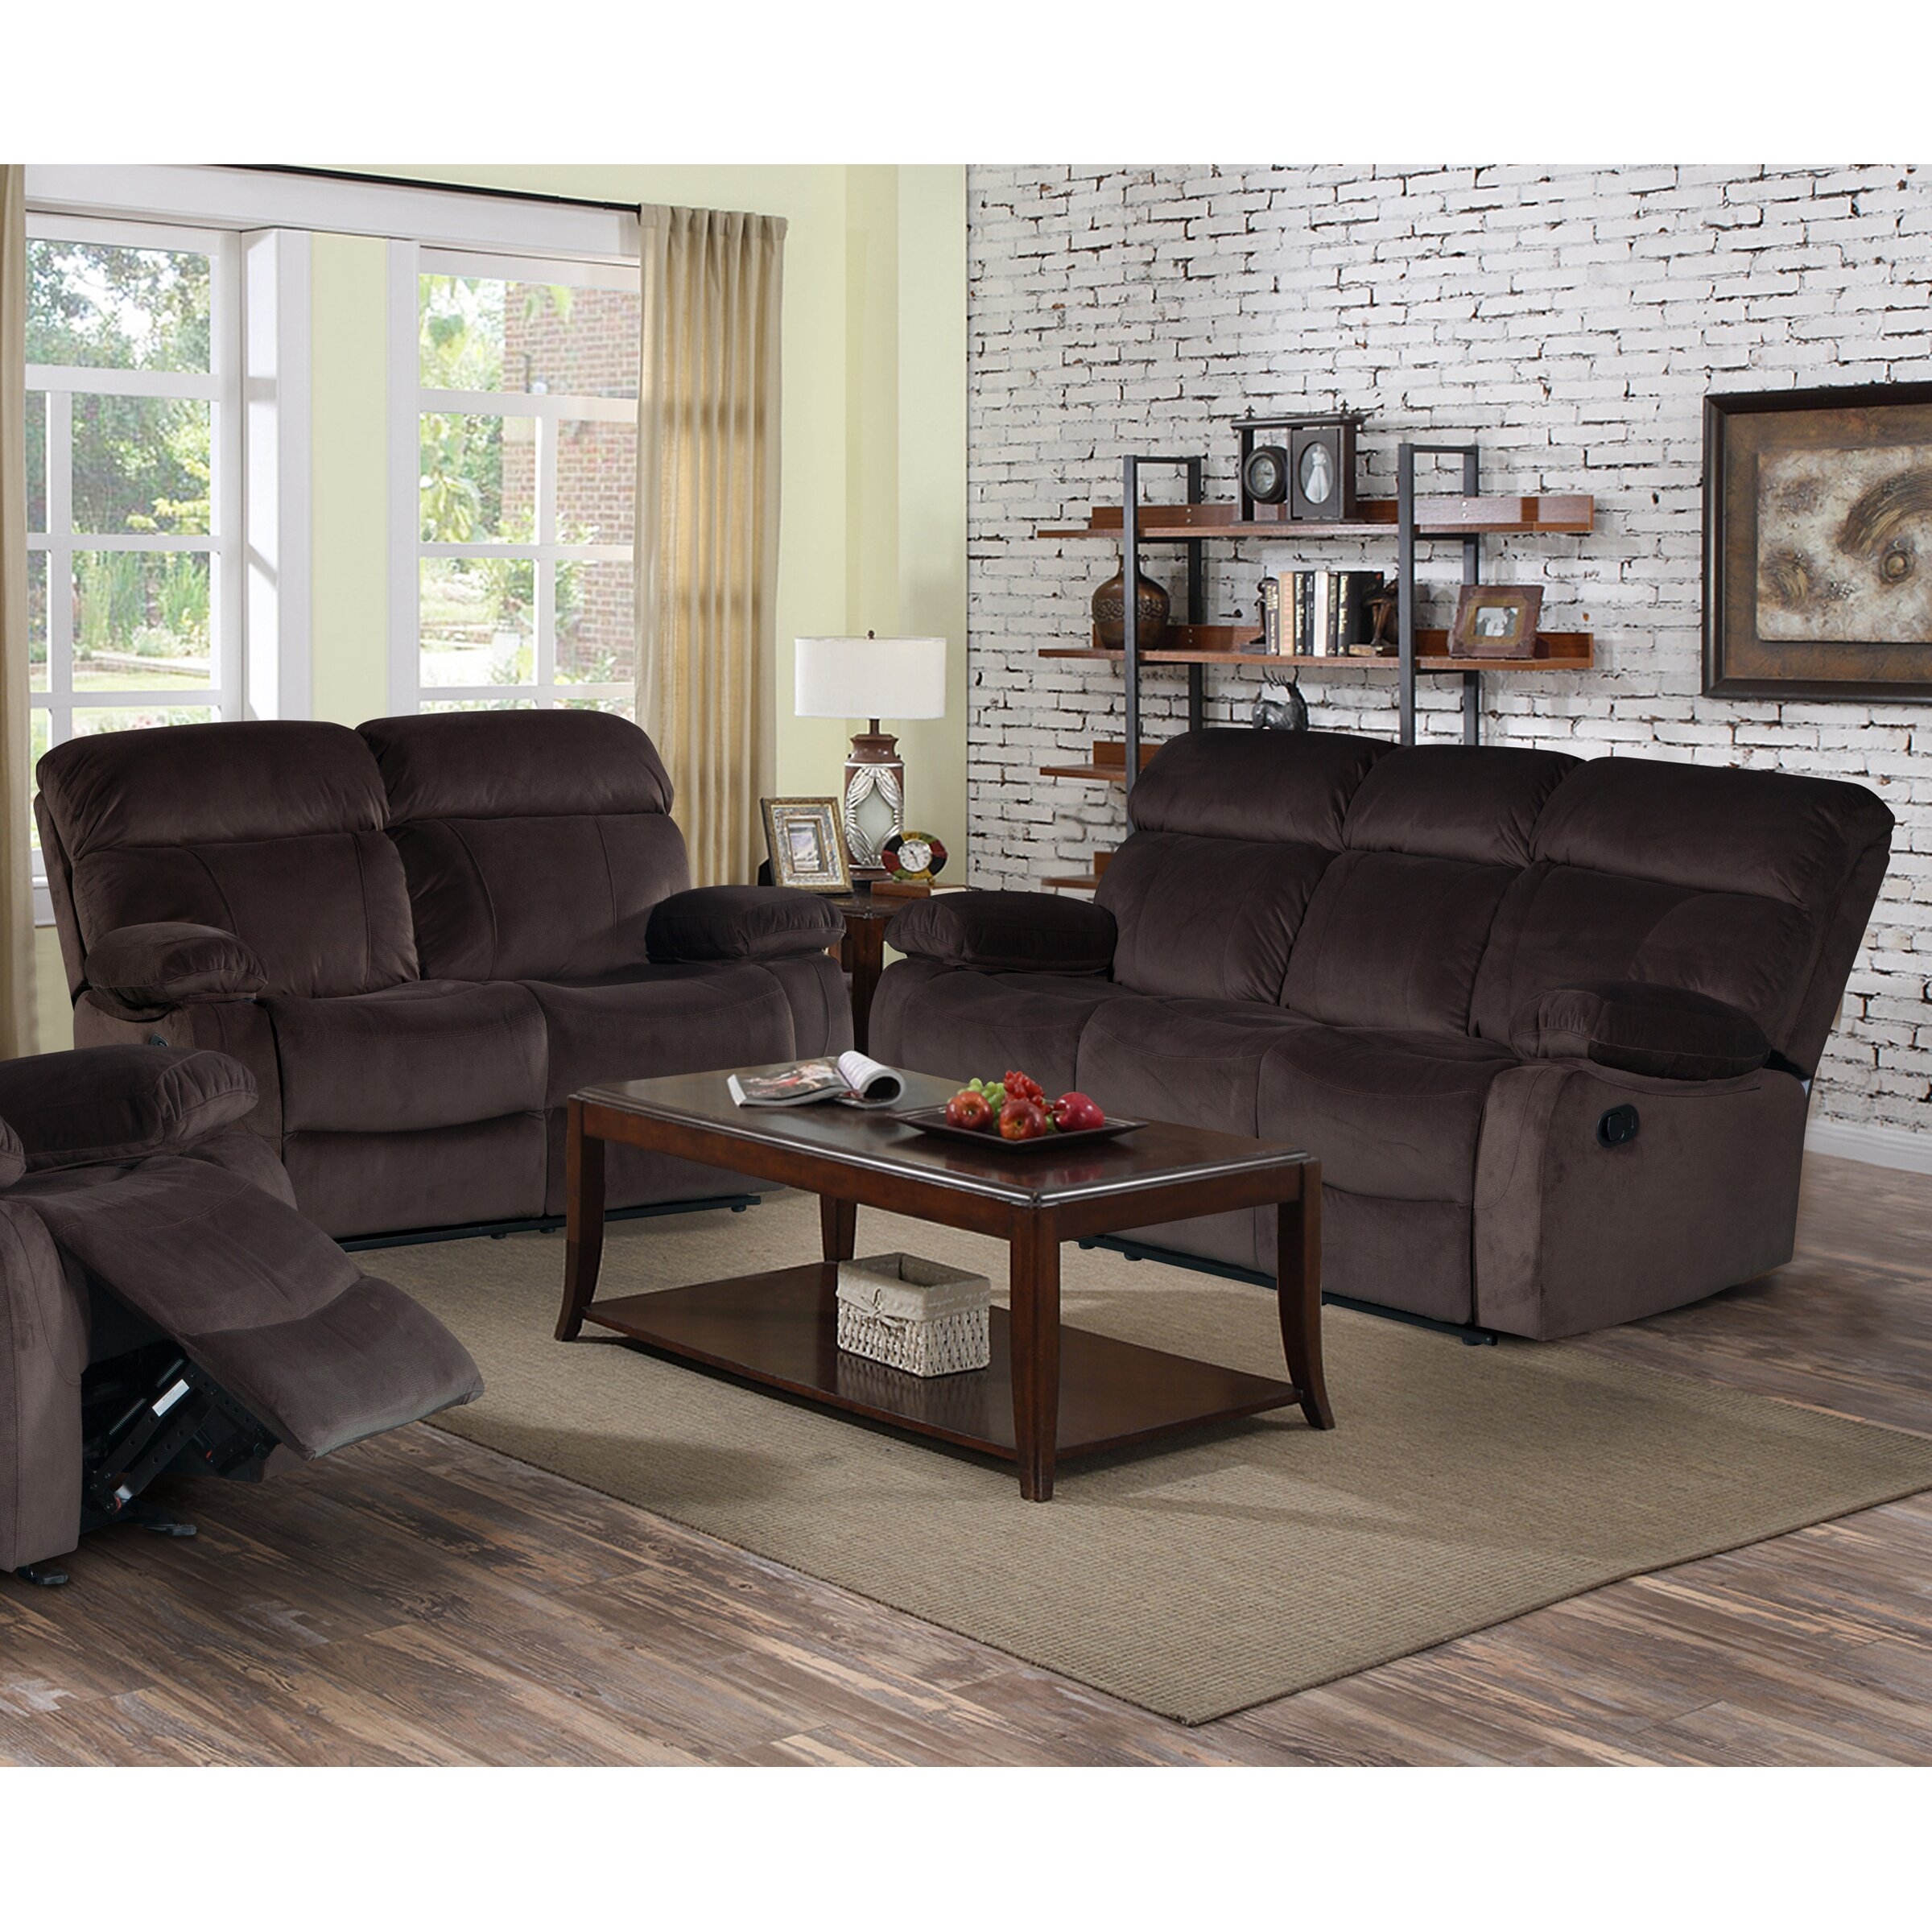 Living in style alvia 2 piece living room set wayfair for 2 piece living room set